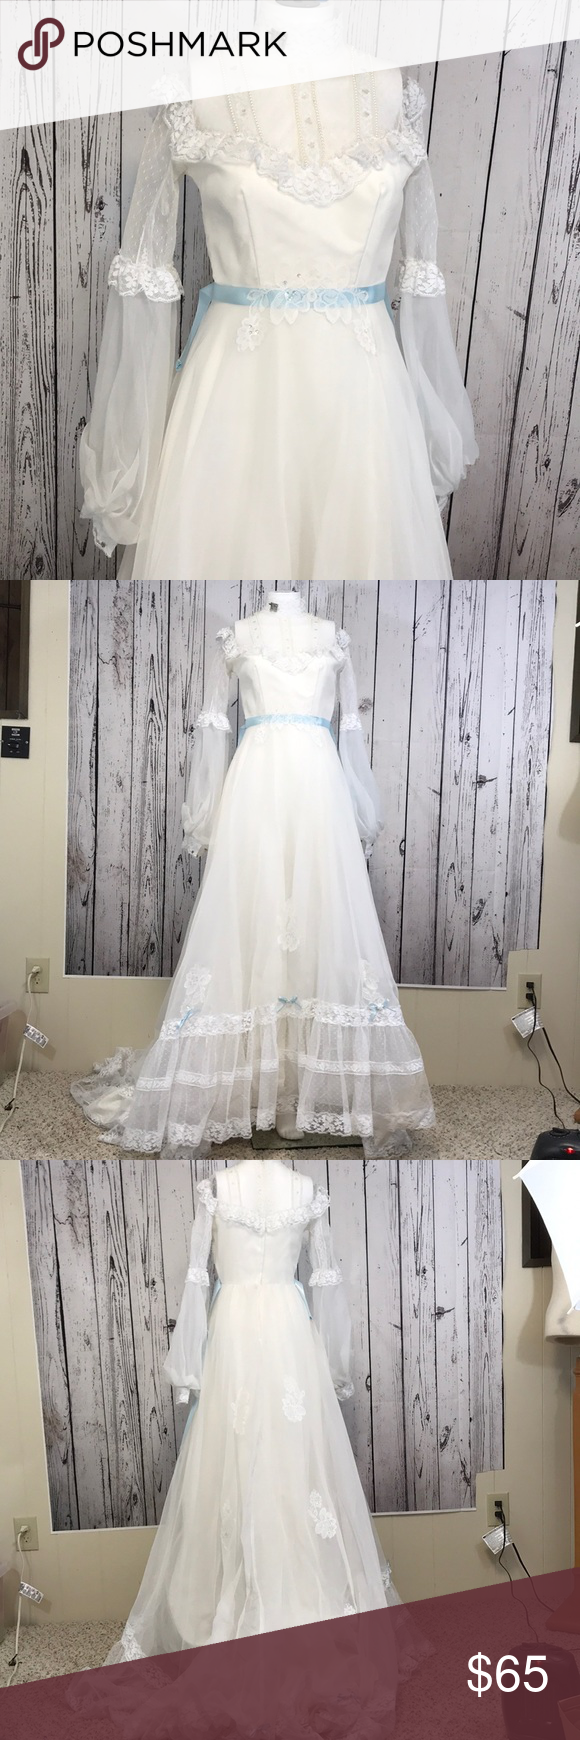 Vintage us boho wedding dress